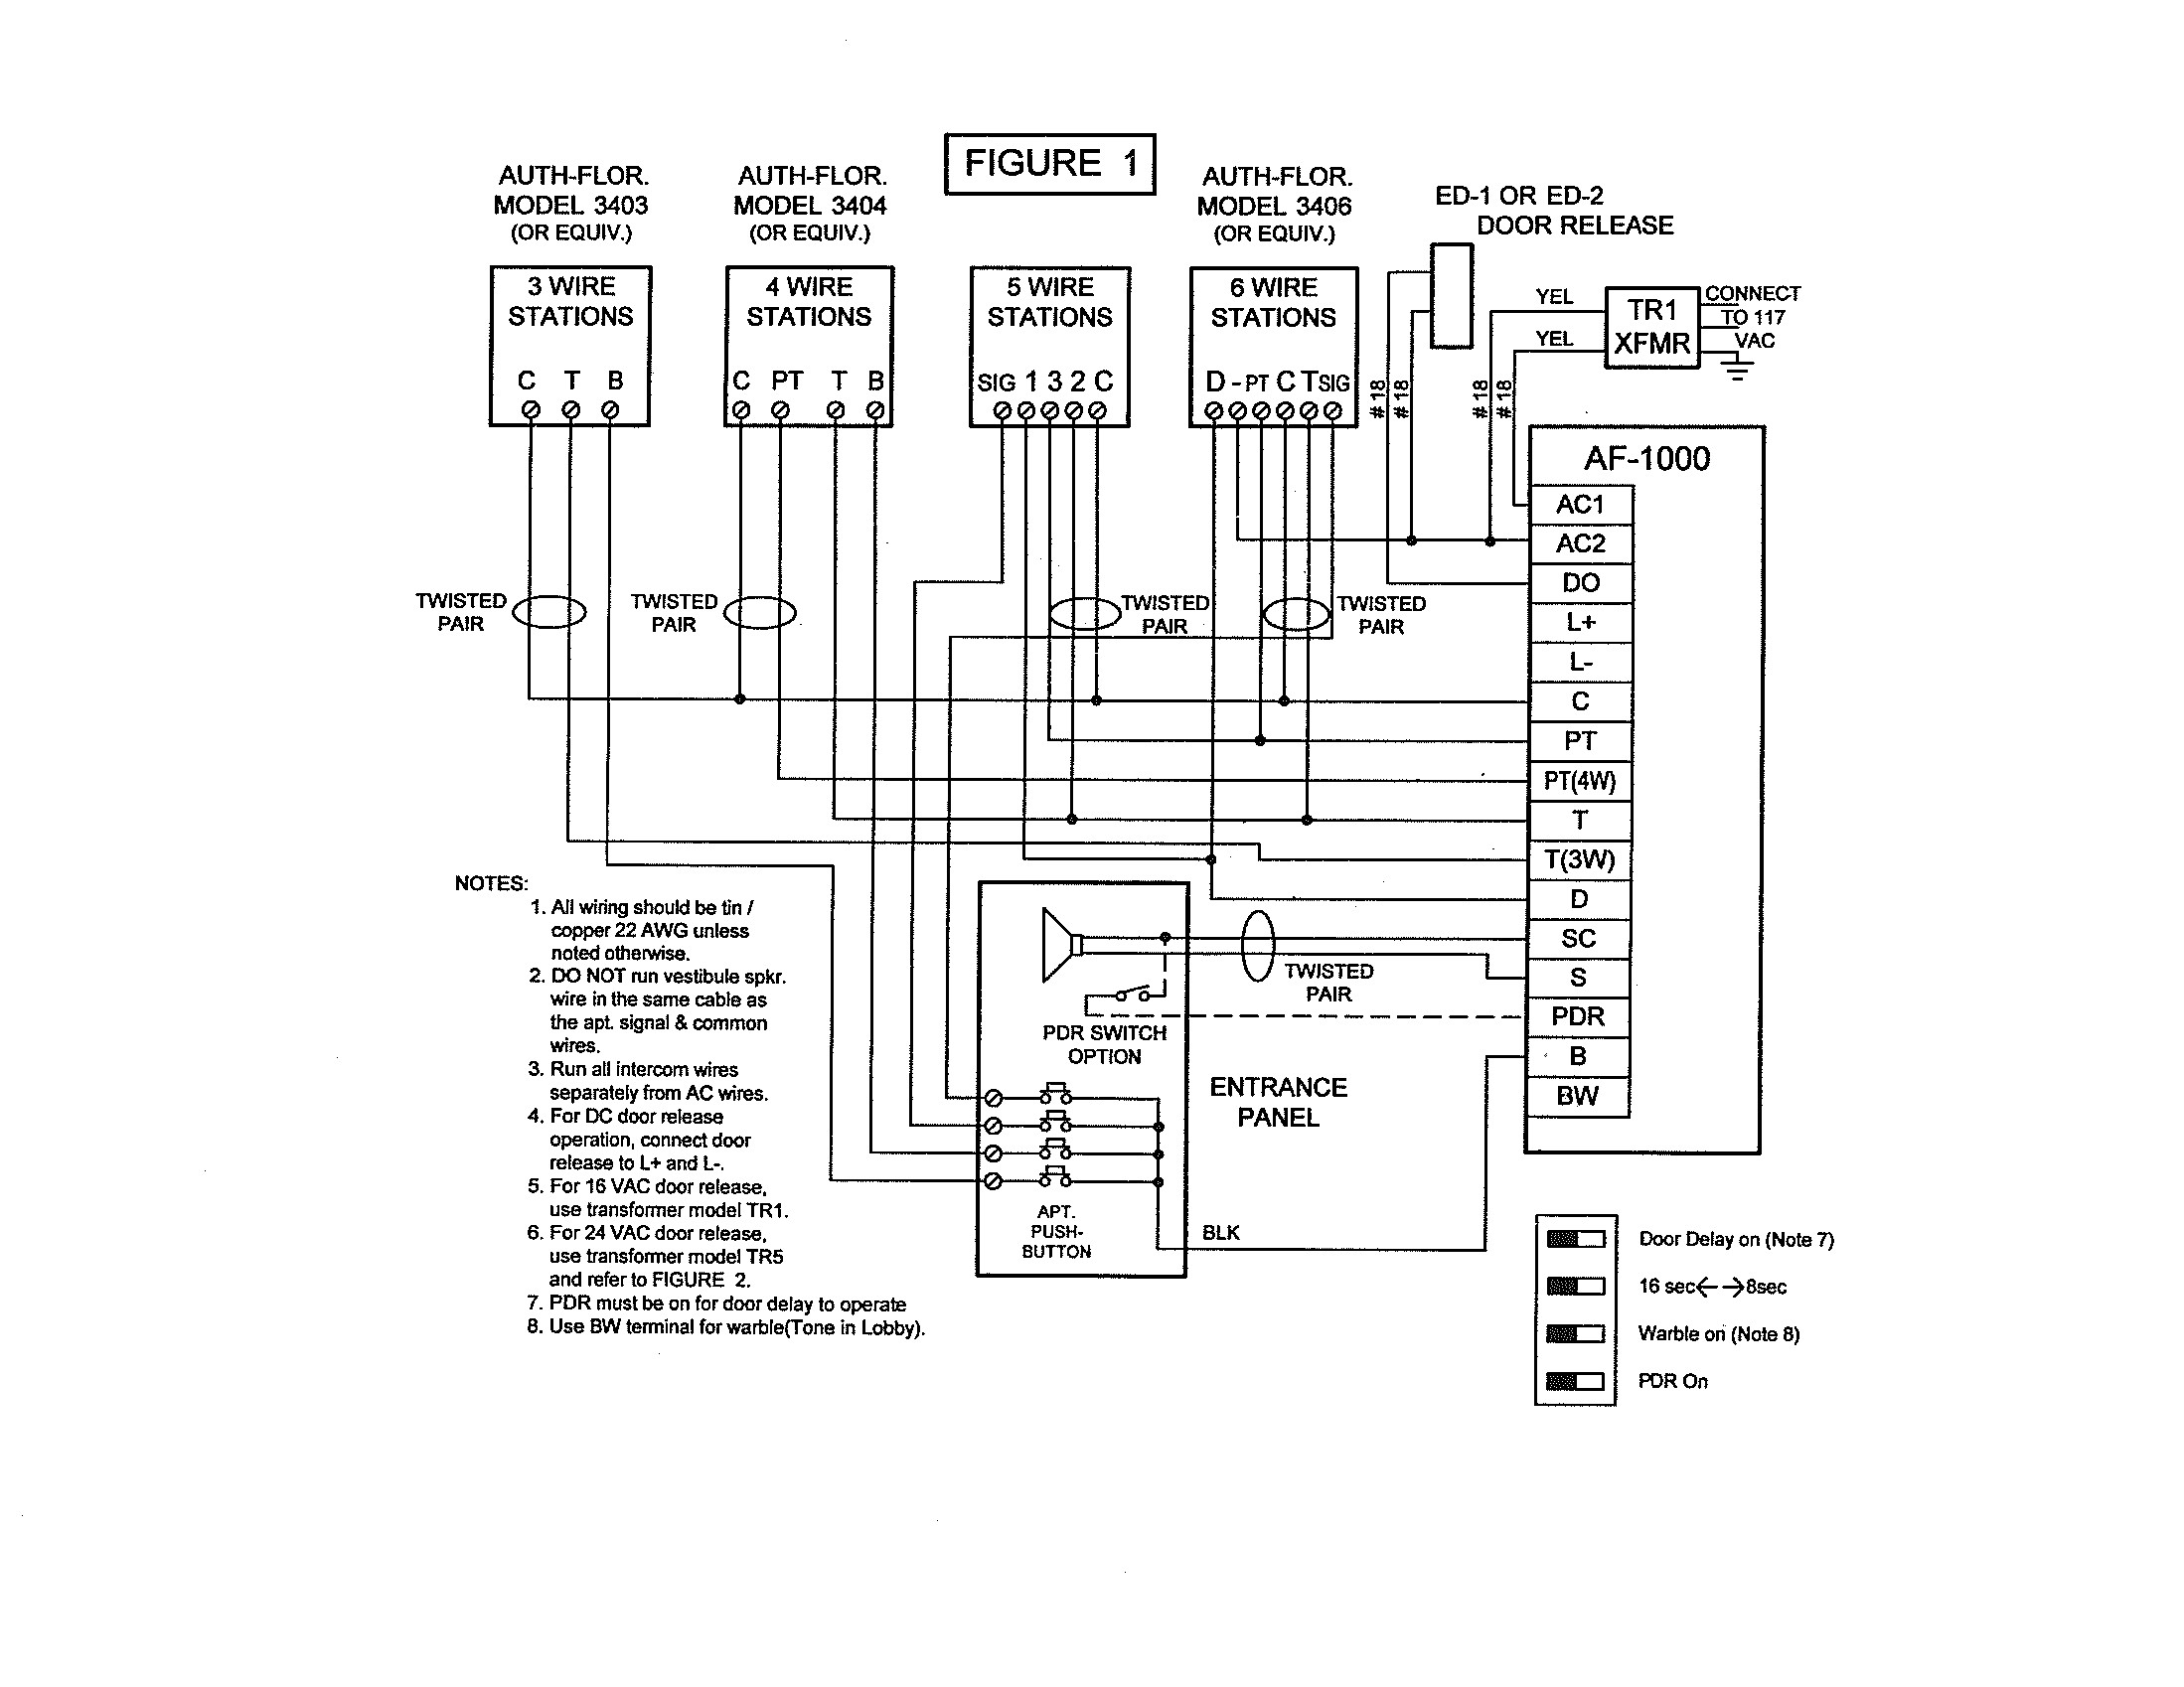 5Th Wheel Wiring Diagram from www.leedan.com